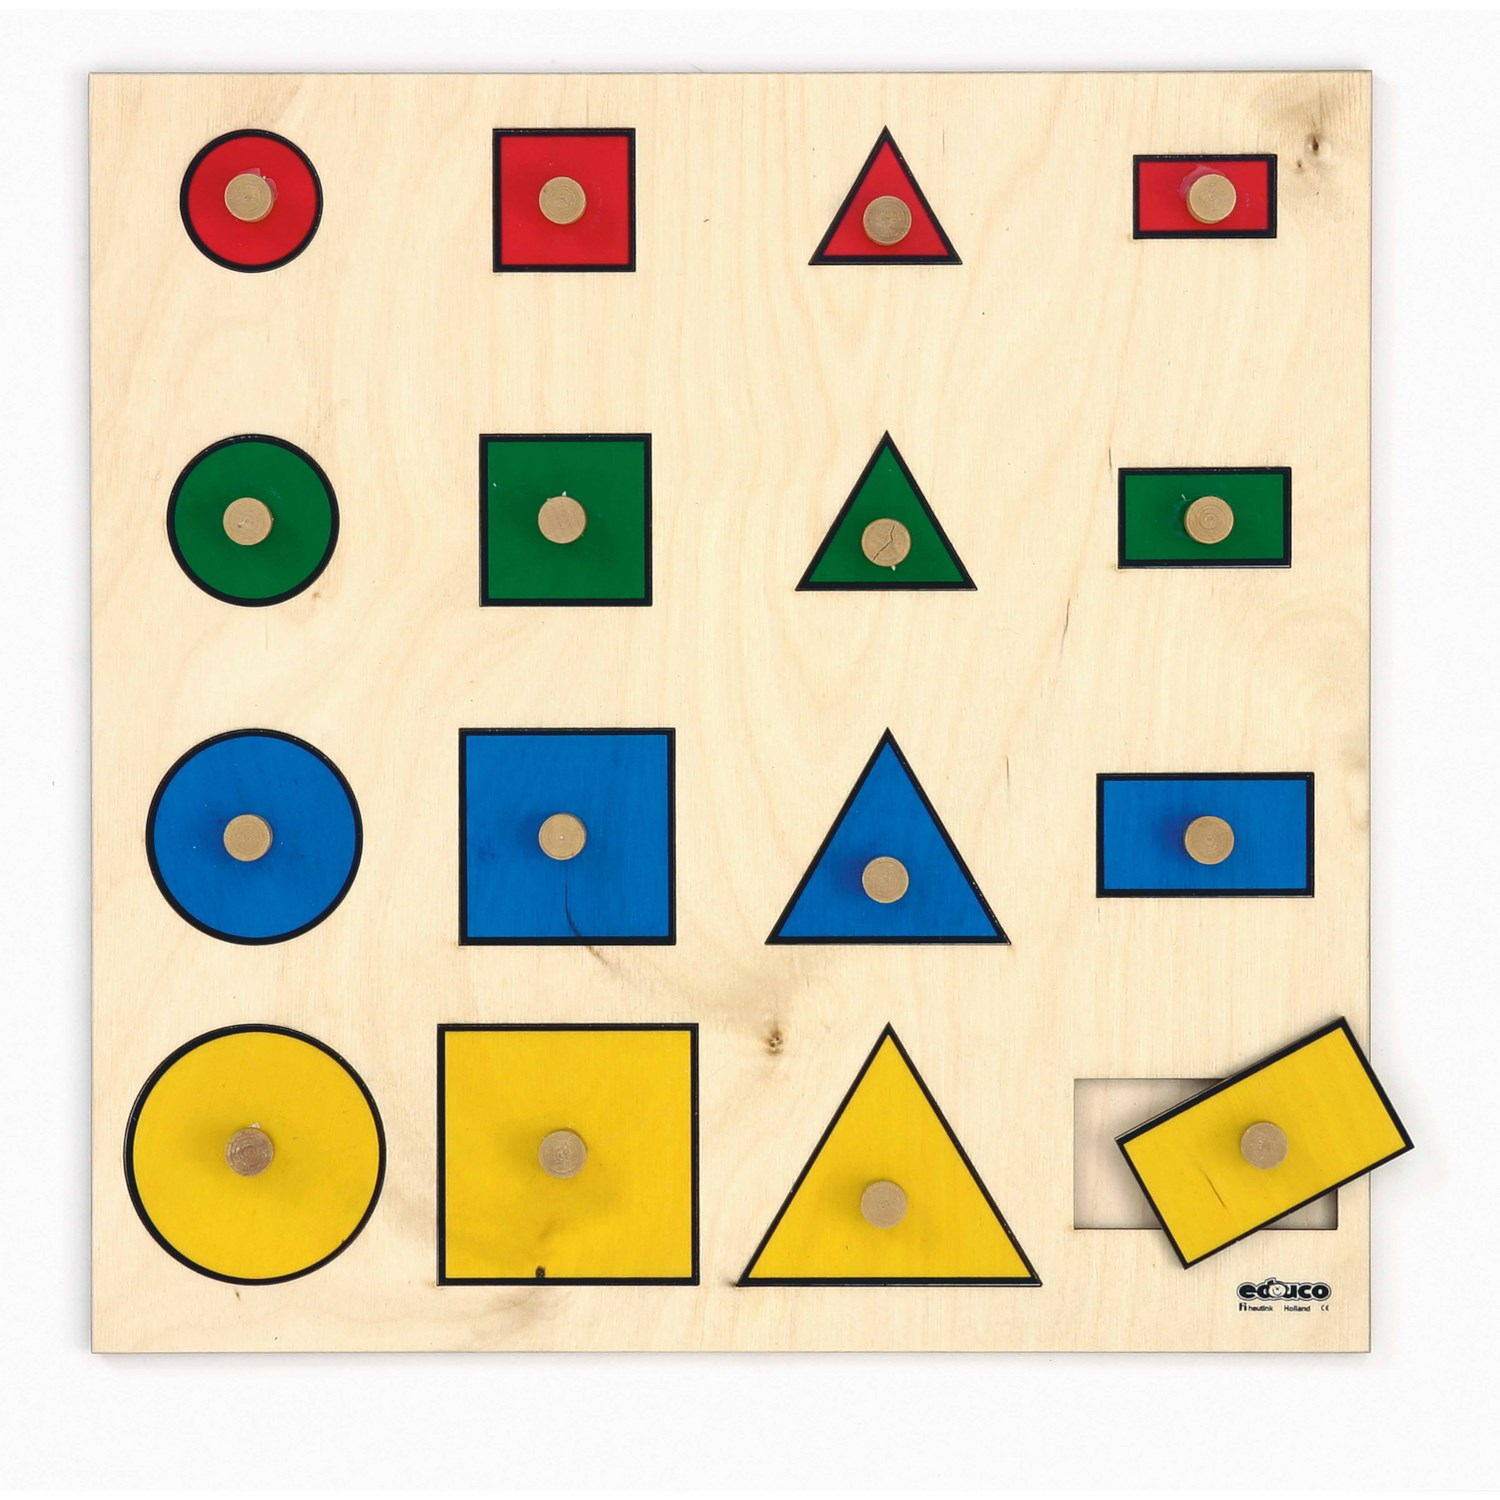 Geometric shapes puzzle - Educo